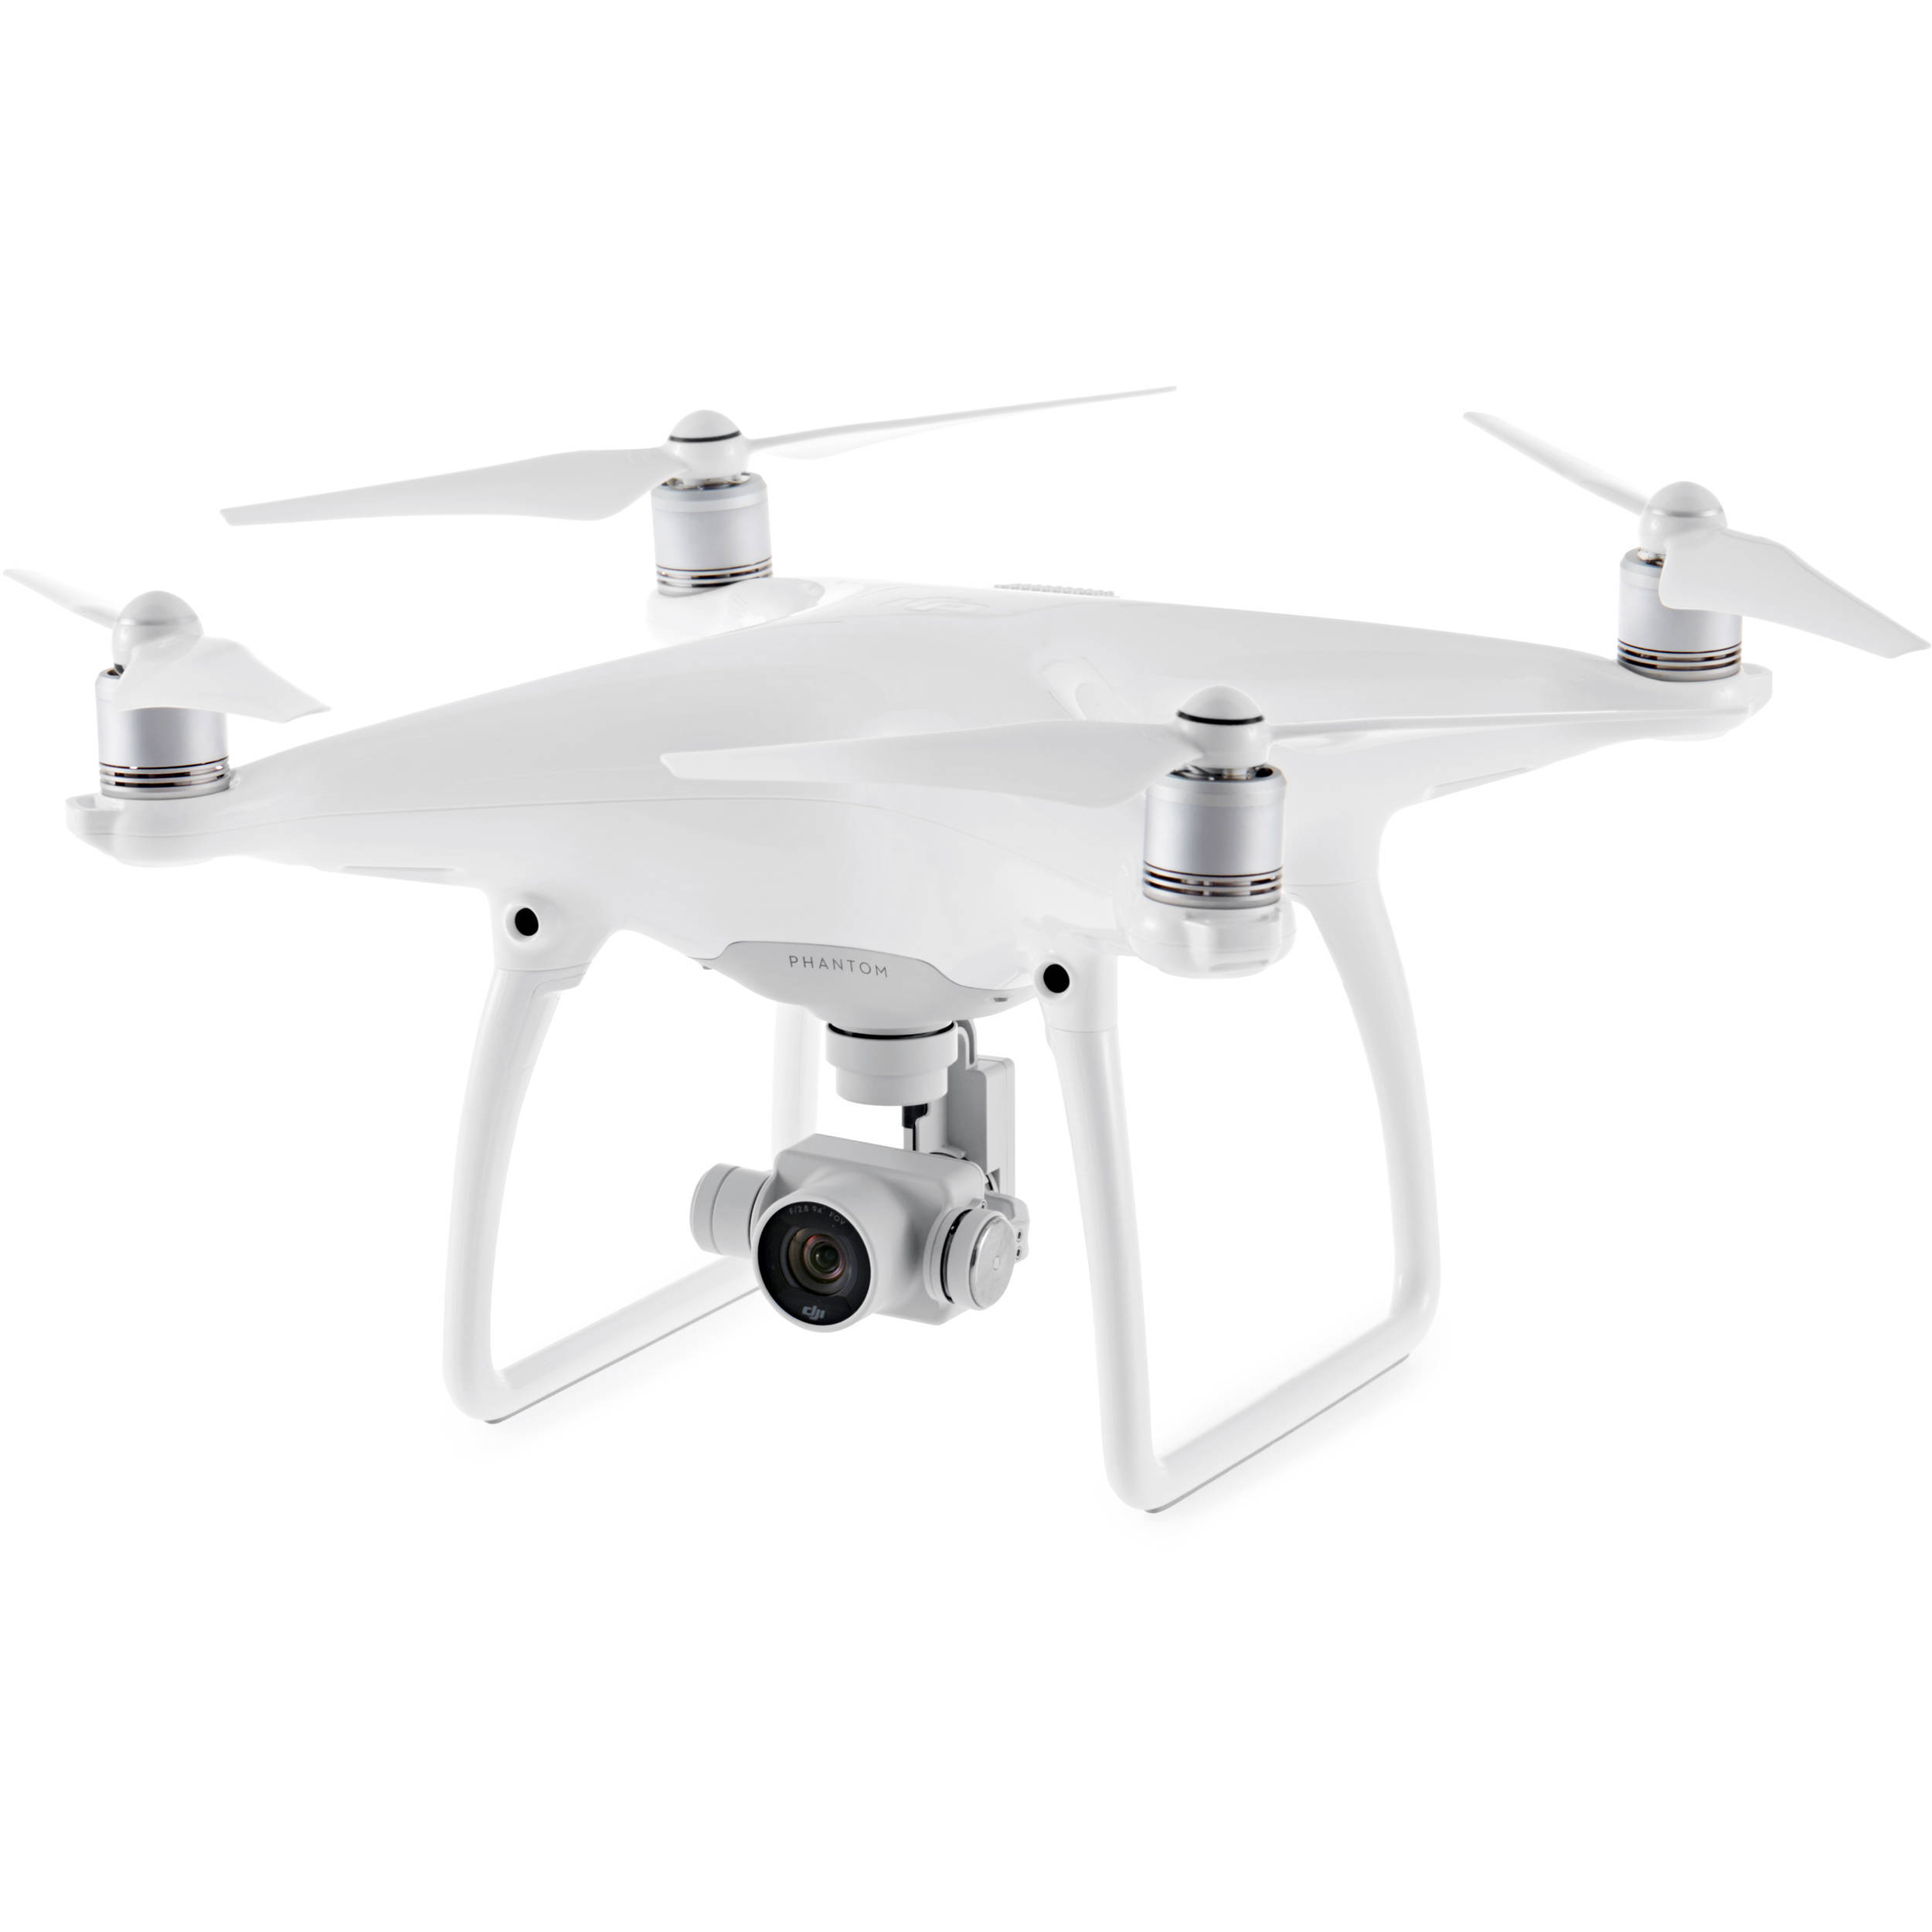 Dji cp pt 000312 phantom 4 professional quadcopter 1235779